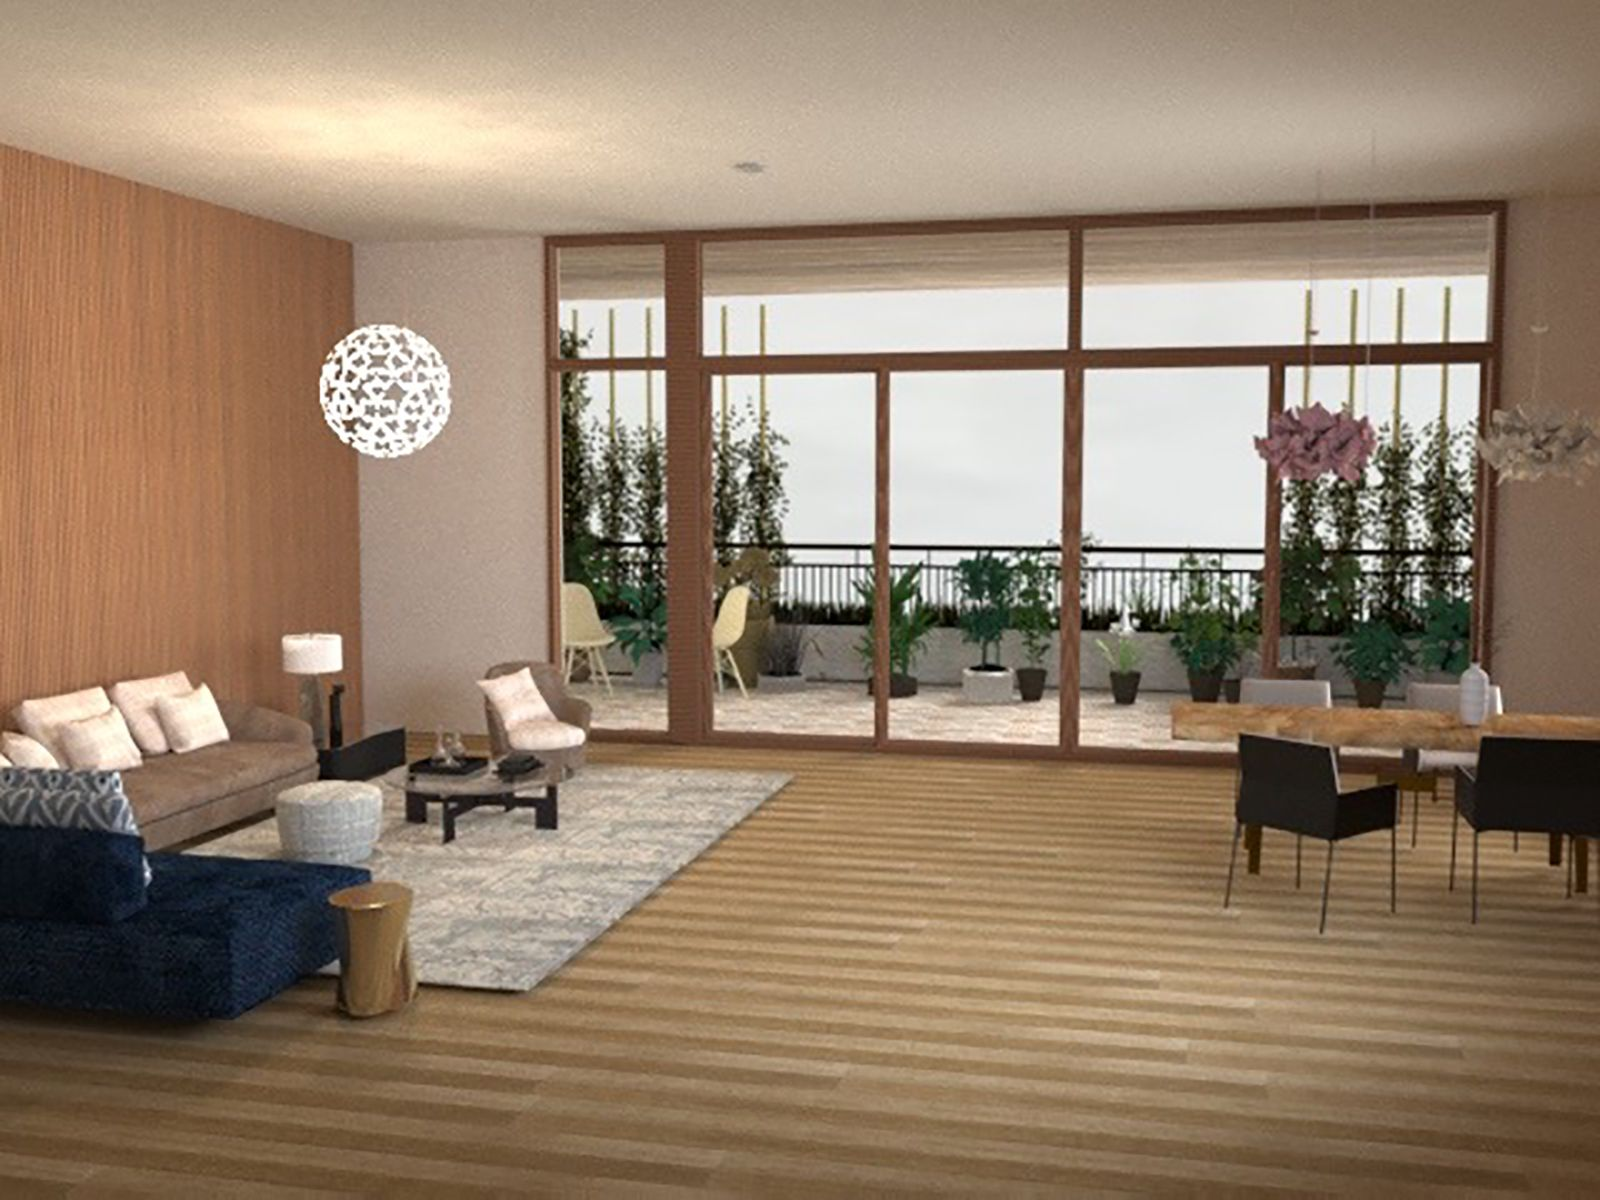 Ecolution - Living Room View 2